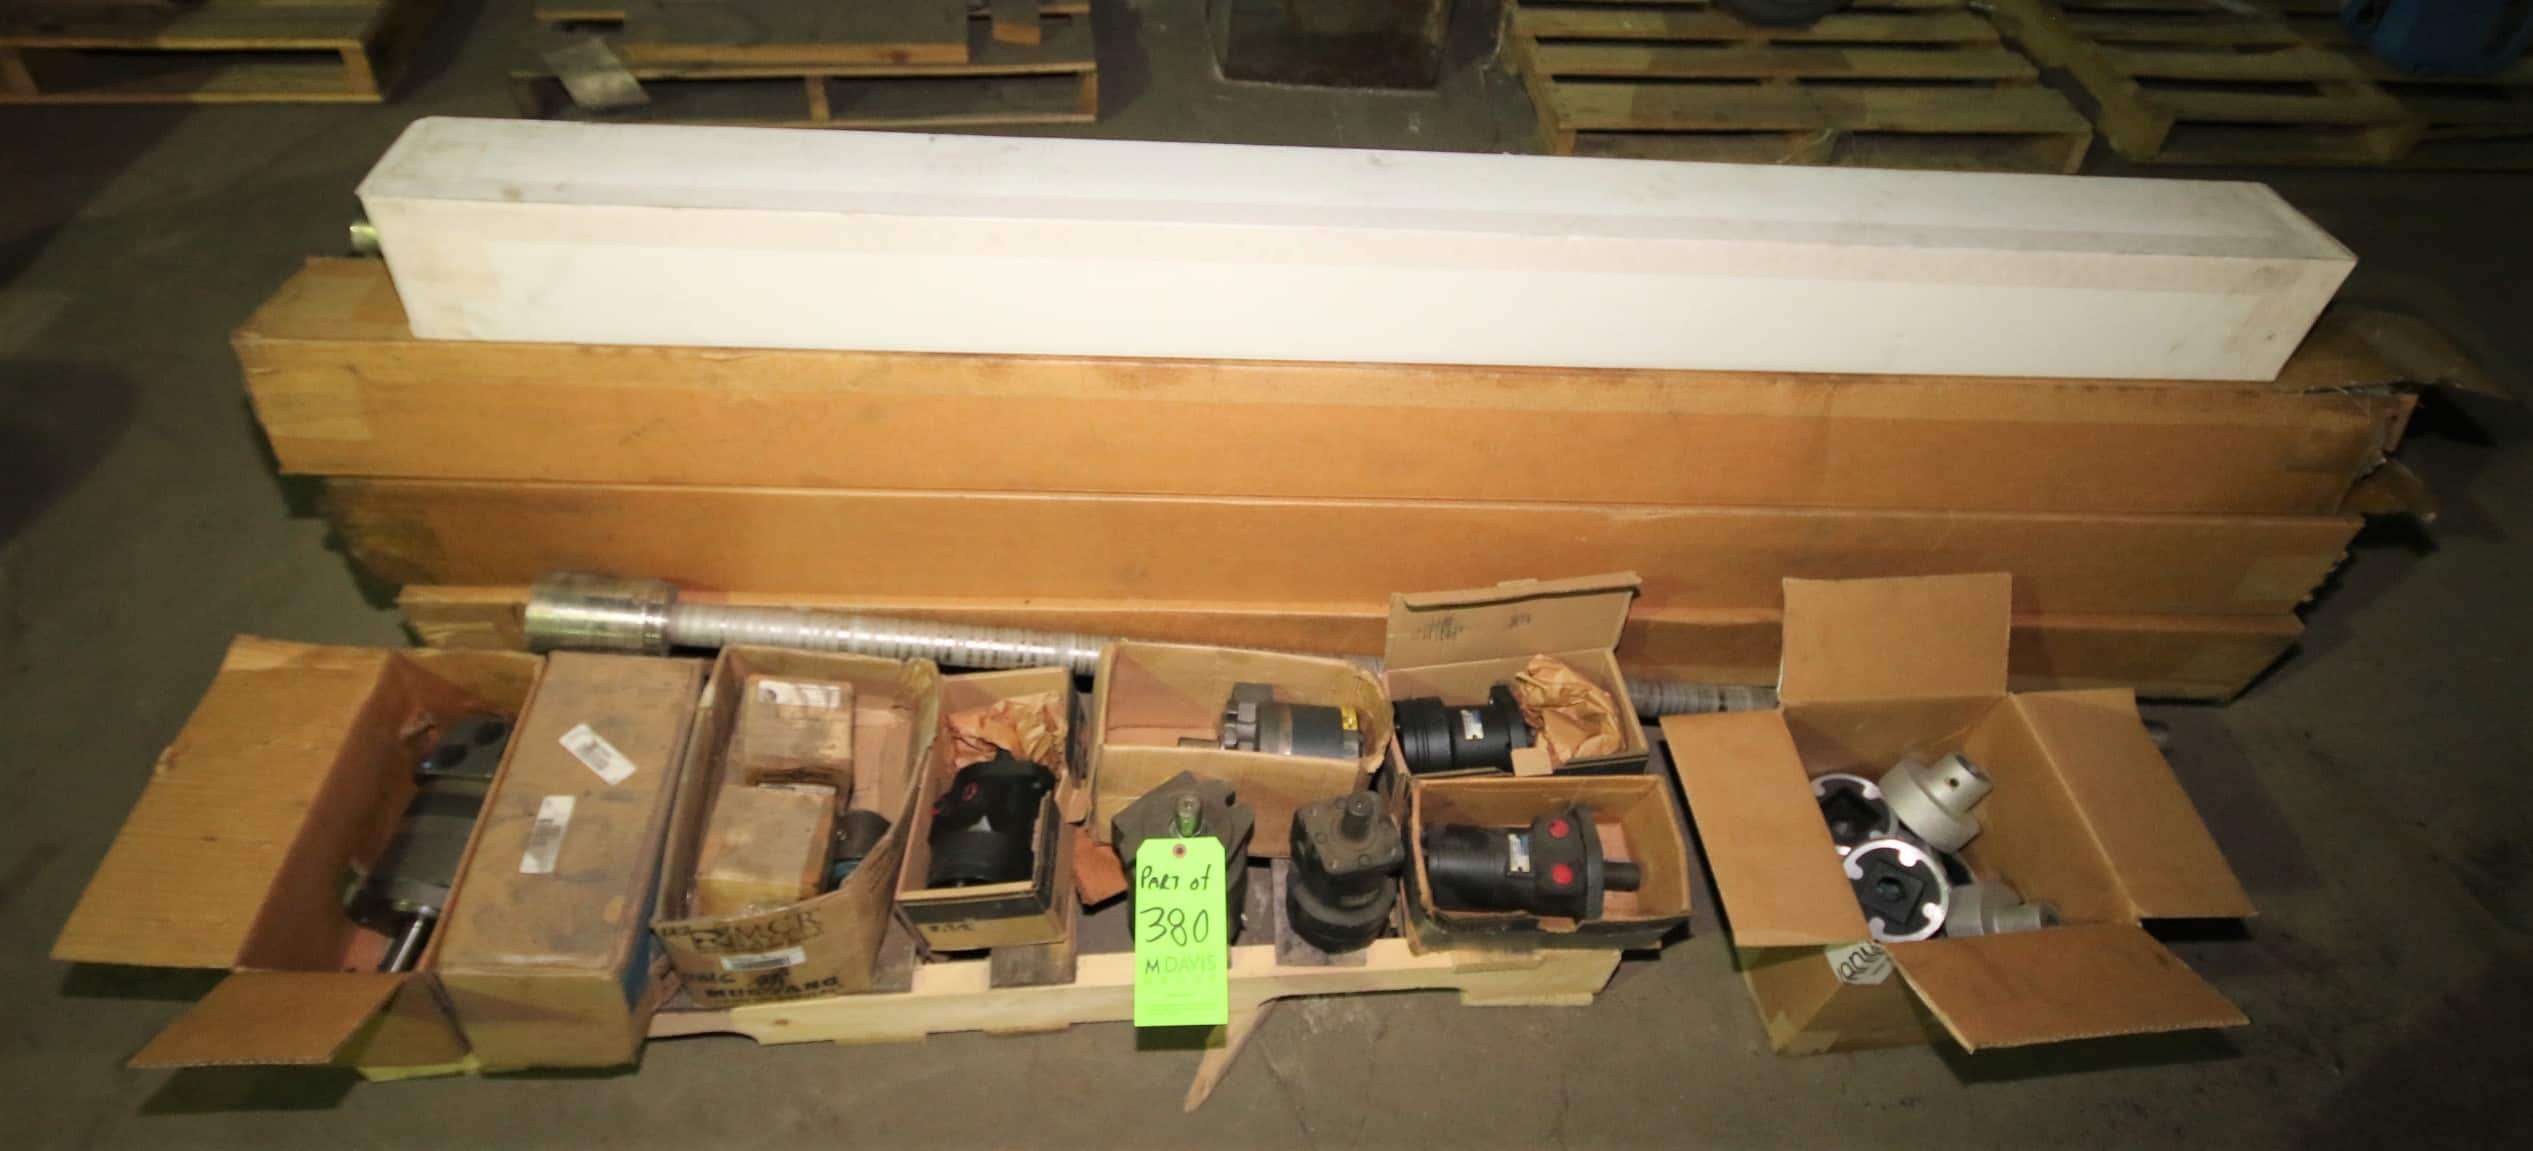 "2 Pallets - New & Used Lyco & Vanmark Peeler Parts Including 70"" & 80"" Brushes, Hydraulic Parts & Etc"